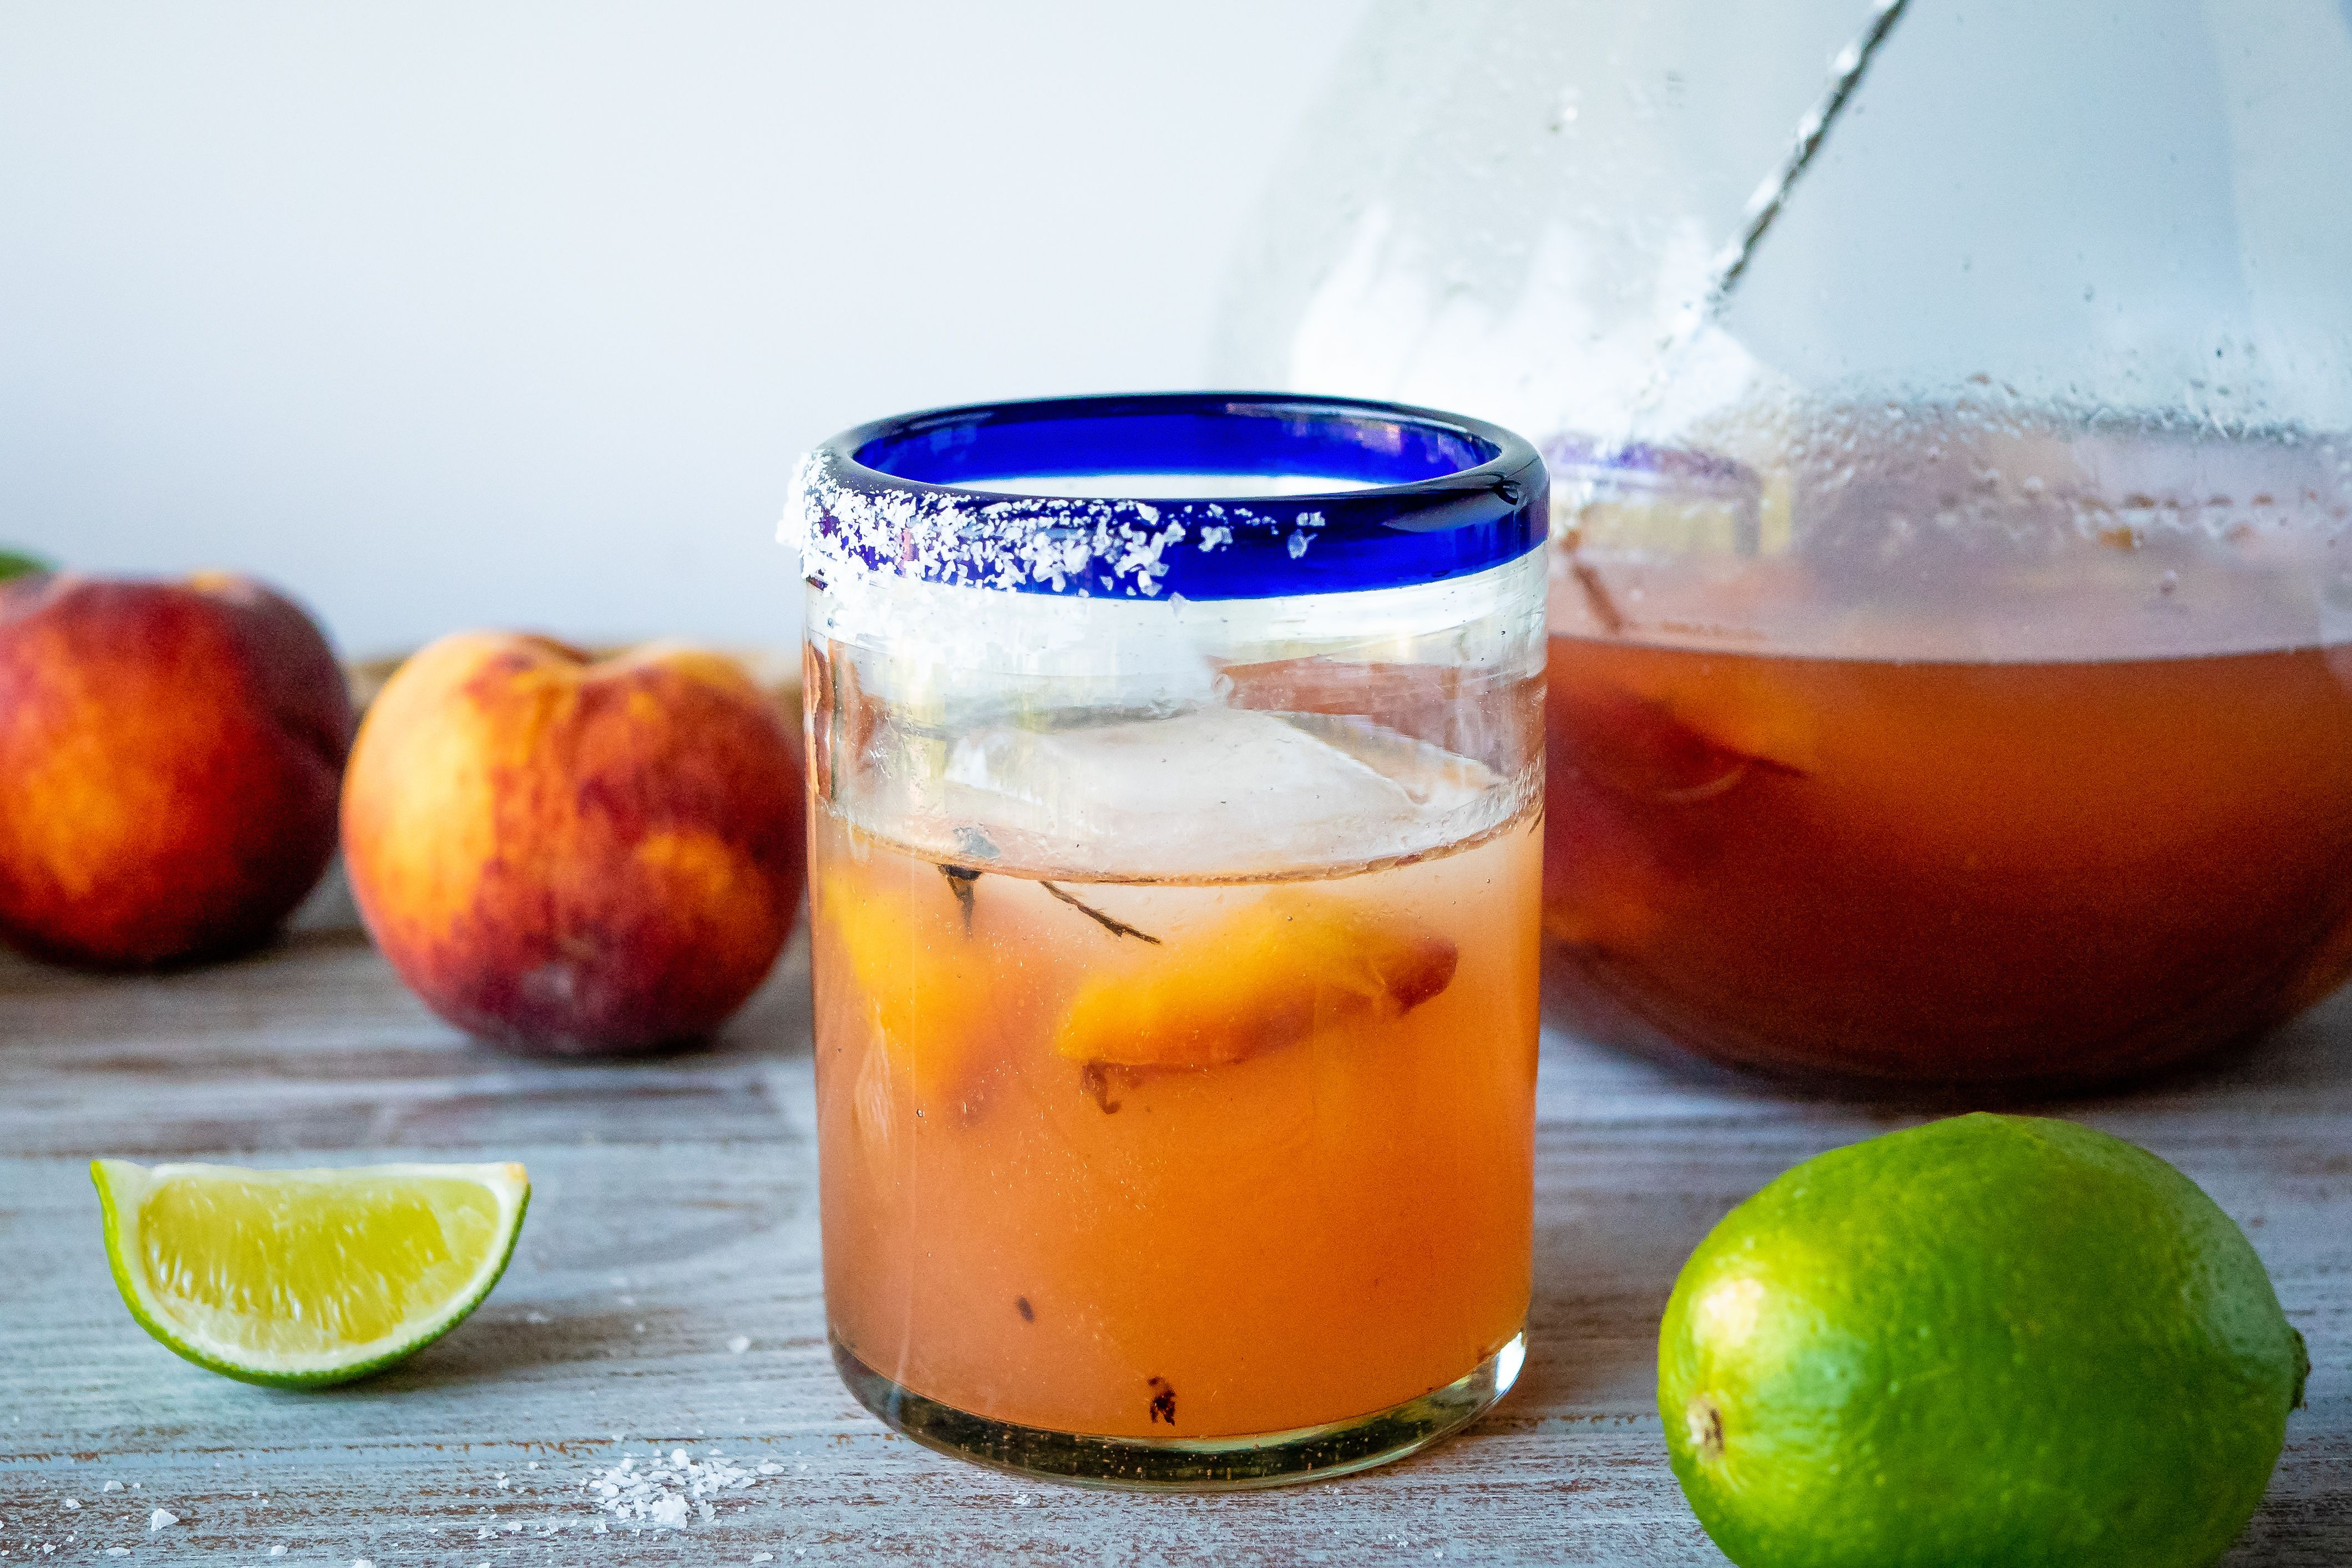 Grilled peach margarita on a table with limes and peaches.